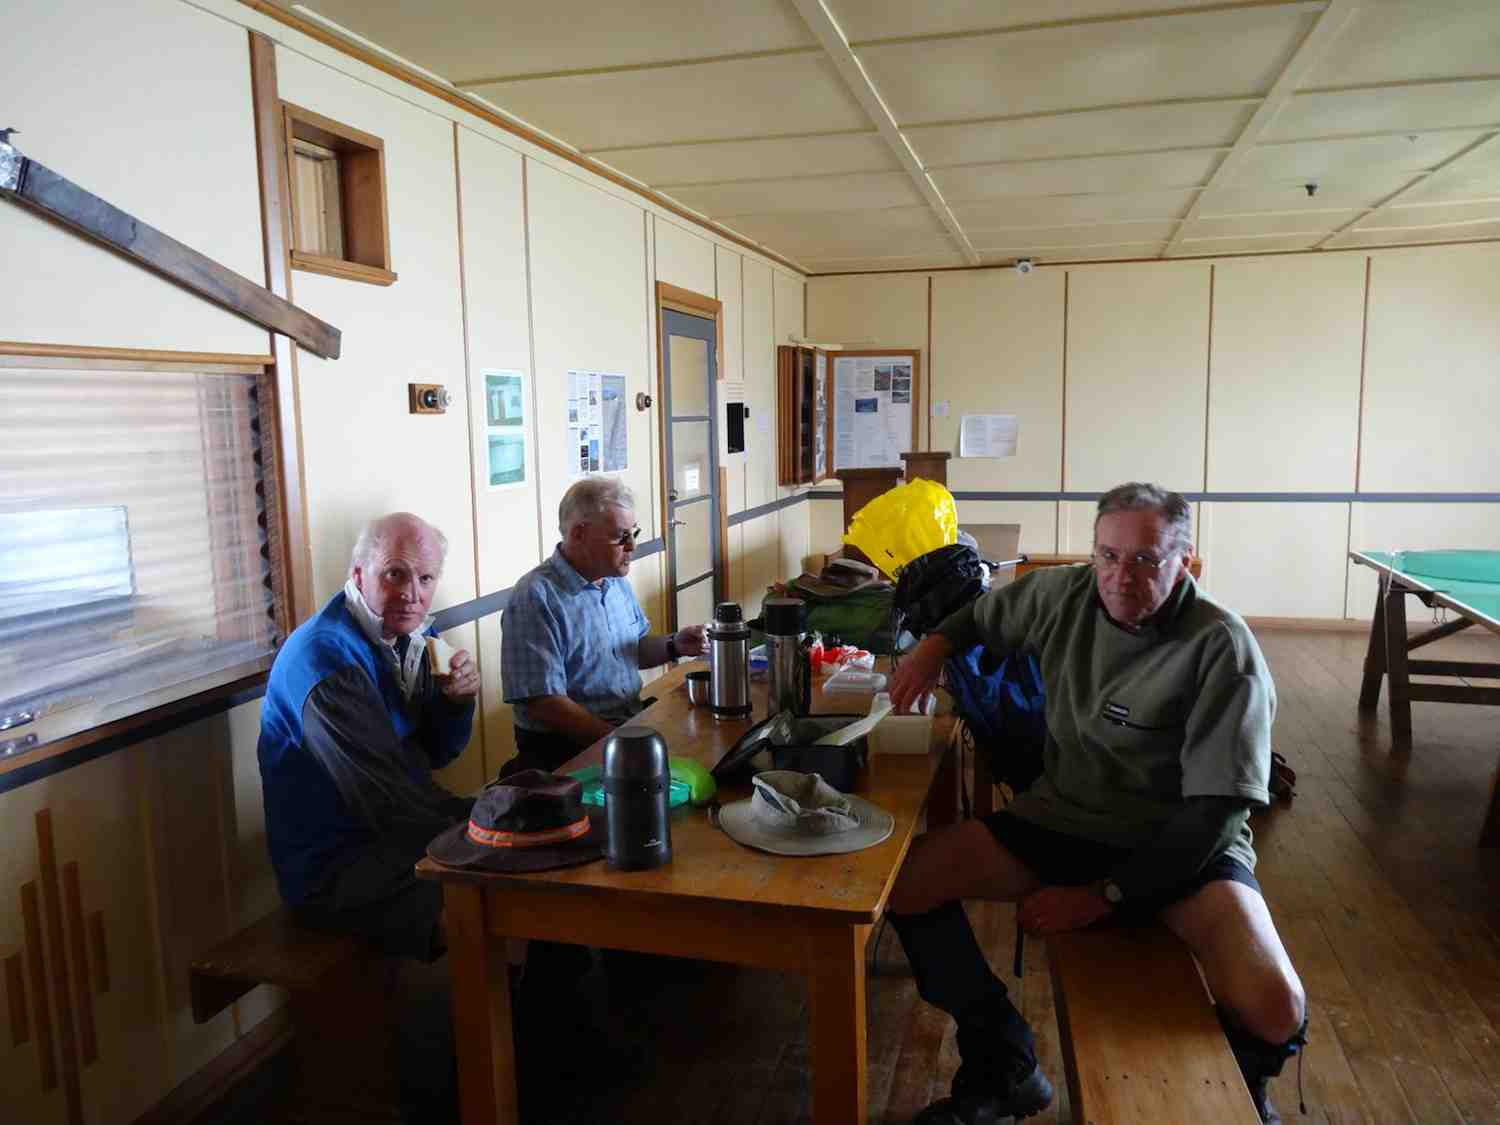 Lunch in Big Hut. (Keith pic)